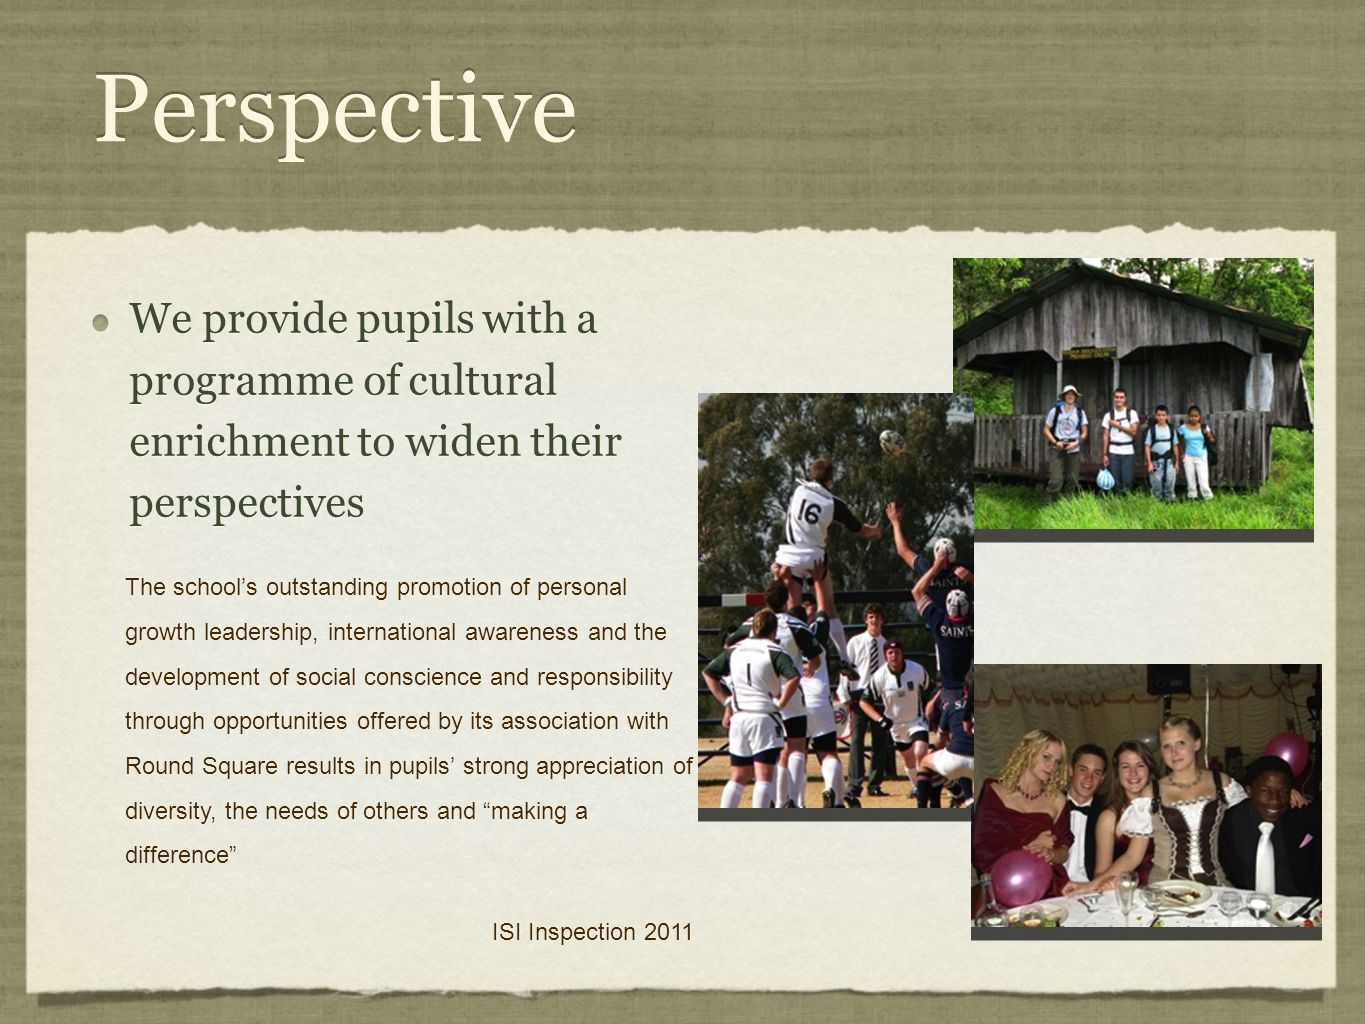 Perspective We provide pupils with a programme of cultural enrichment to widen their perspectives The school's outstanding promotion of personal growth leadership, international awareness and the development of social conscience and responsibility through opportunities offered by its association with Round Square results in pupils' strong appreciation of diversity, the needs of others and making a difference ISI Inspection 2011 The school's outstanding promotion of personal growth leadership, international awareness and the development of social conscience and responsibility through opportunities offered by its association with Round Square results in pupils' strong appreciation of diversity, the needs of others and making a difference ISI Inspection 2011